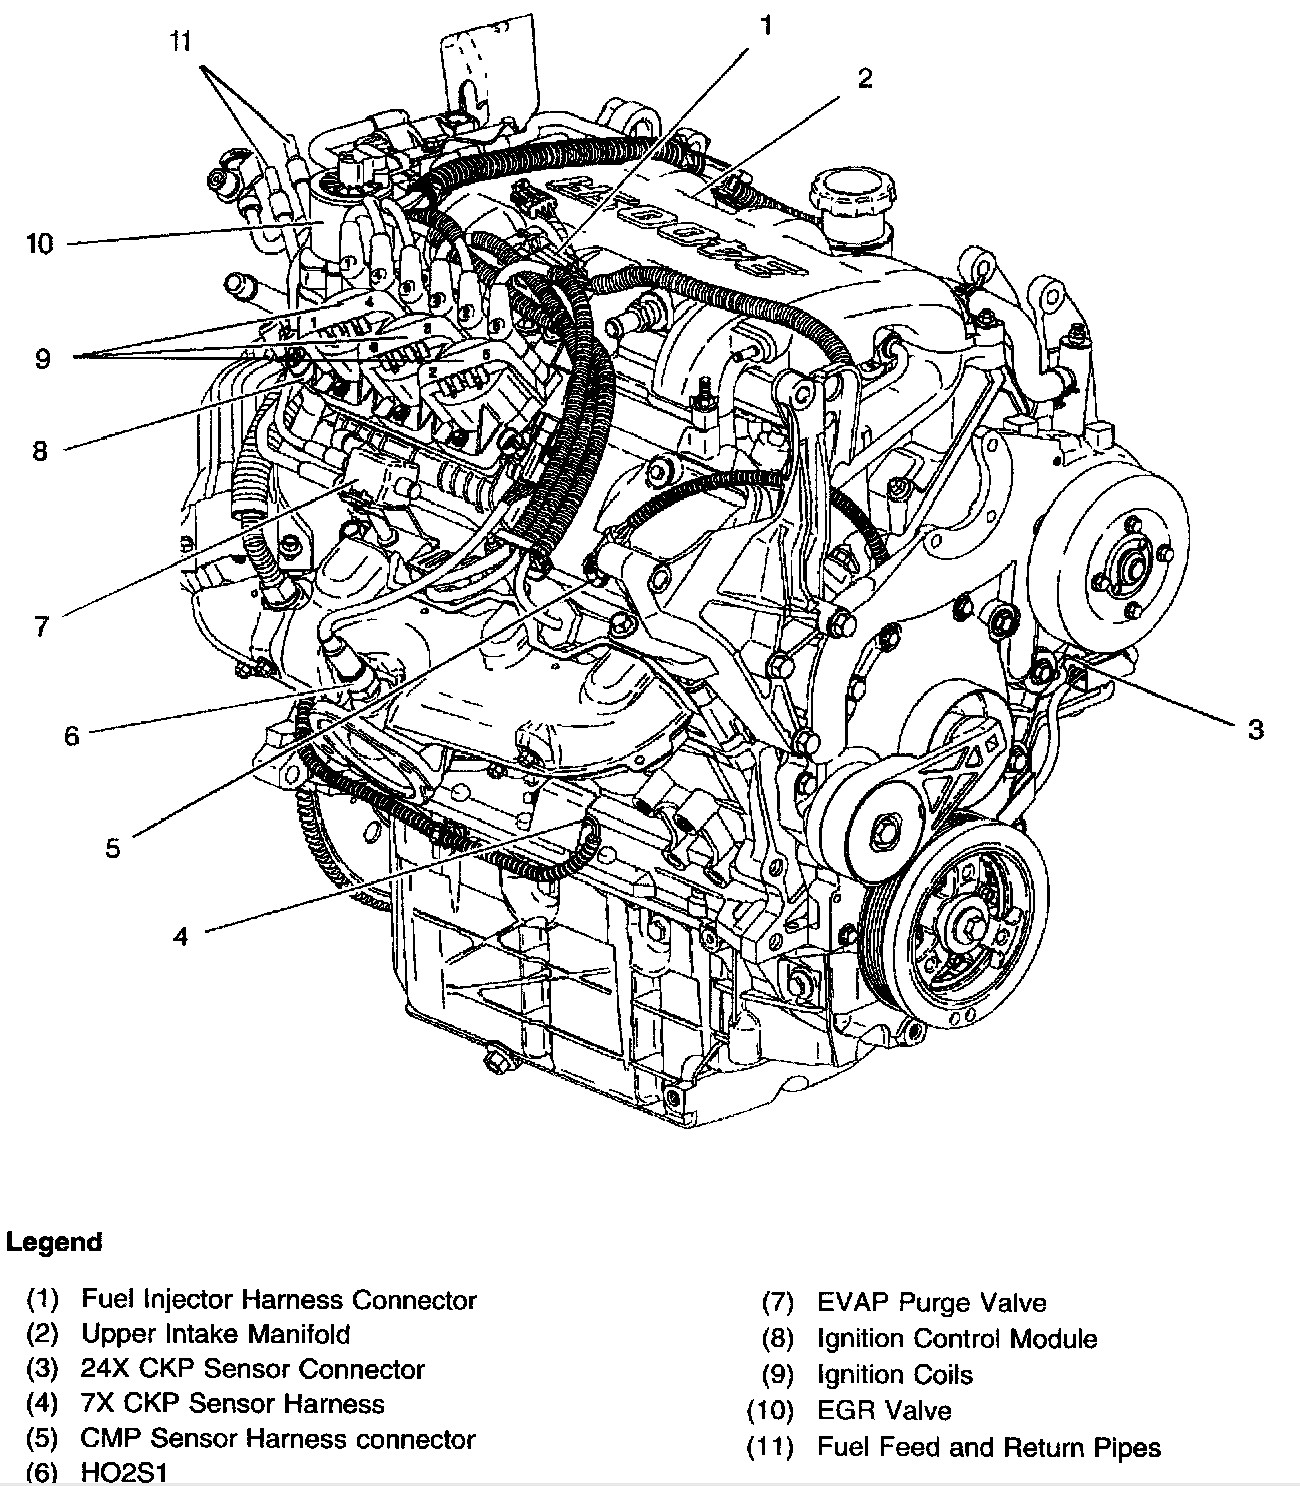 Chevy Engine Parts Diagram The Portal And Forum Of Wiring 1996 S10 4 Cylinder Car Gm 2 Library Rh 17 Winebottlecrafts Org Suburban